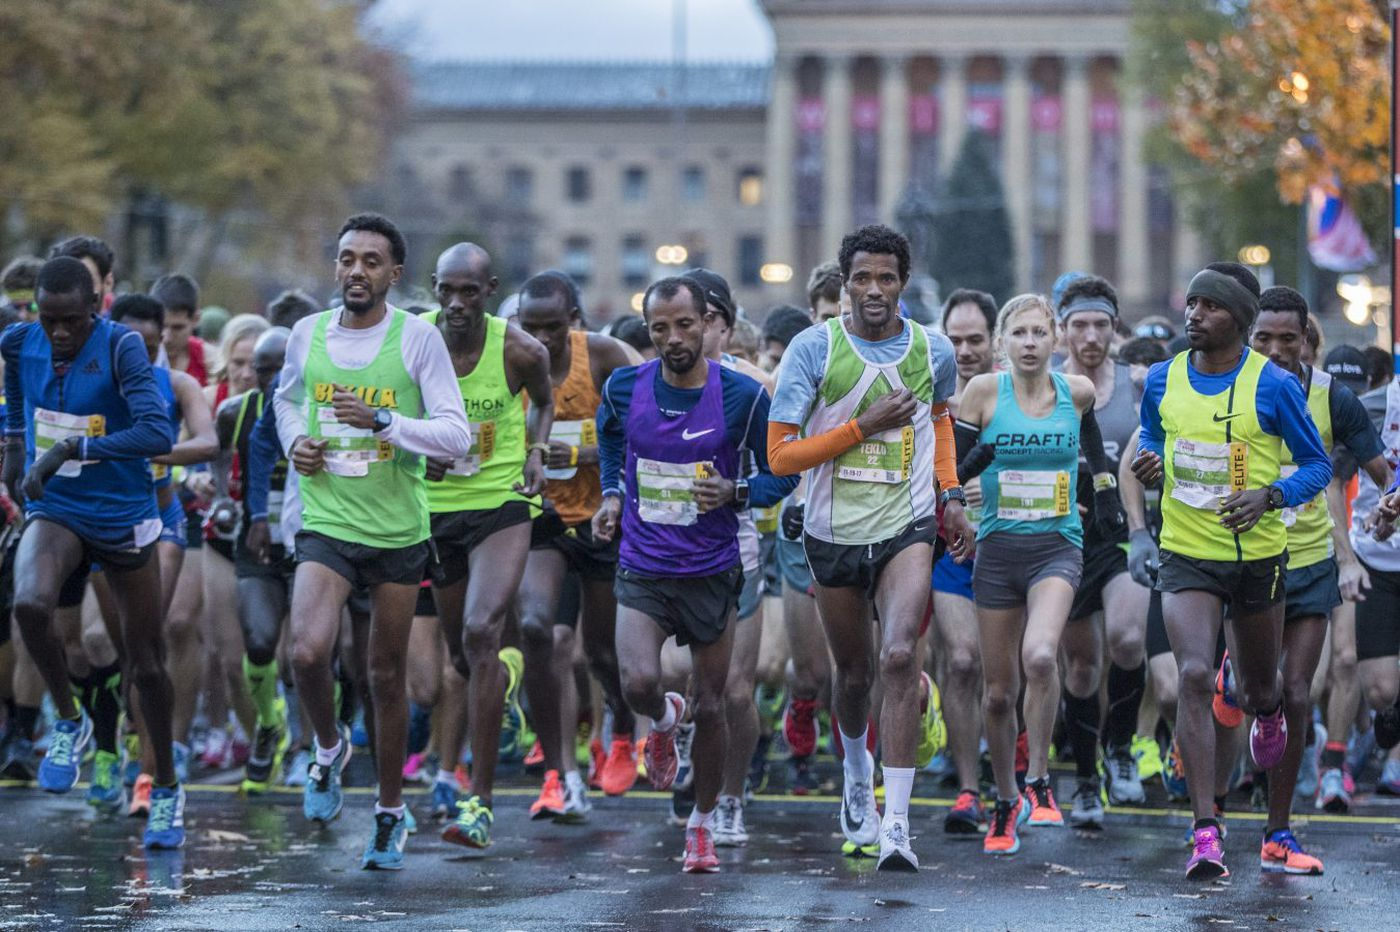 At the Philadelphia Marathon, expect high-tech shoes, energy gels, and science